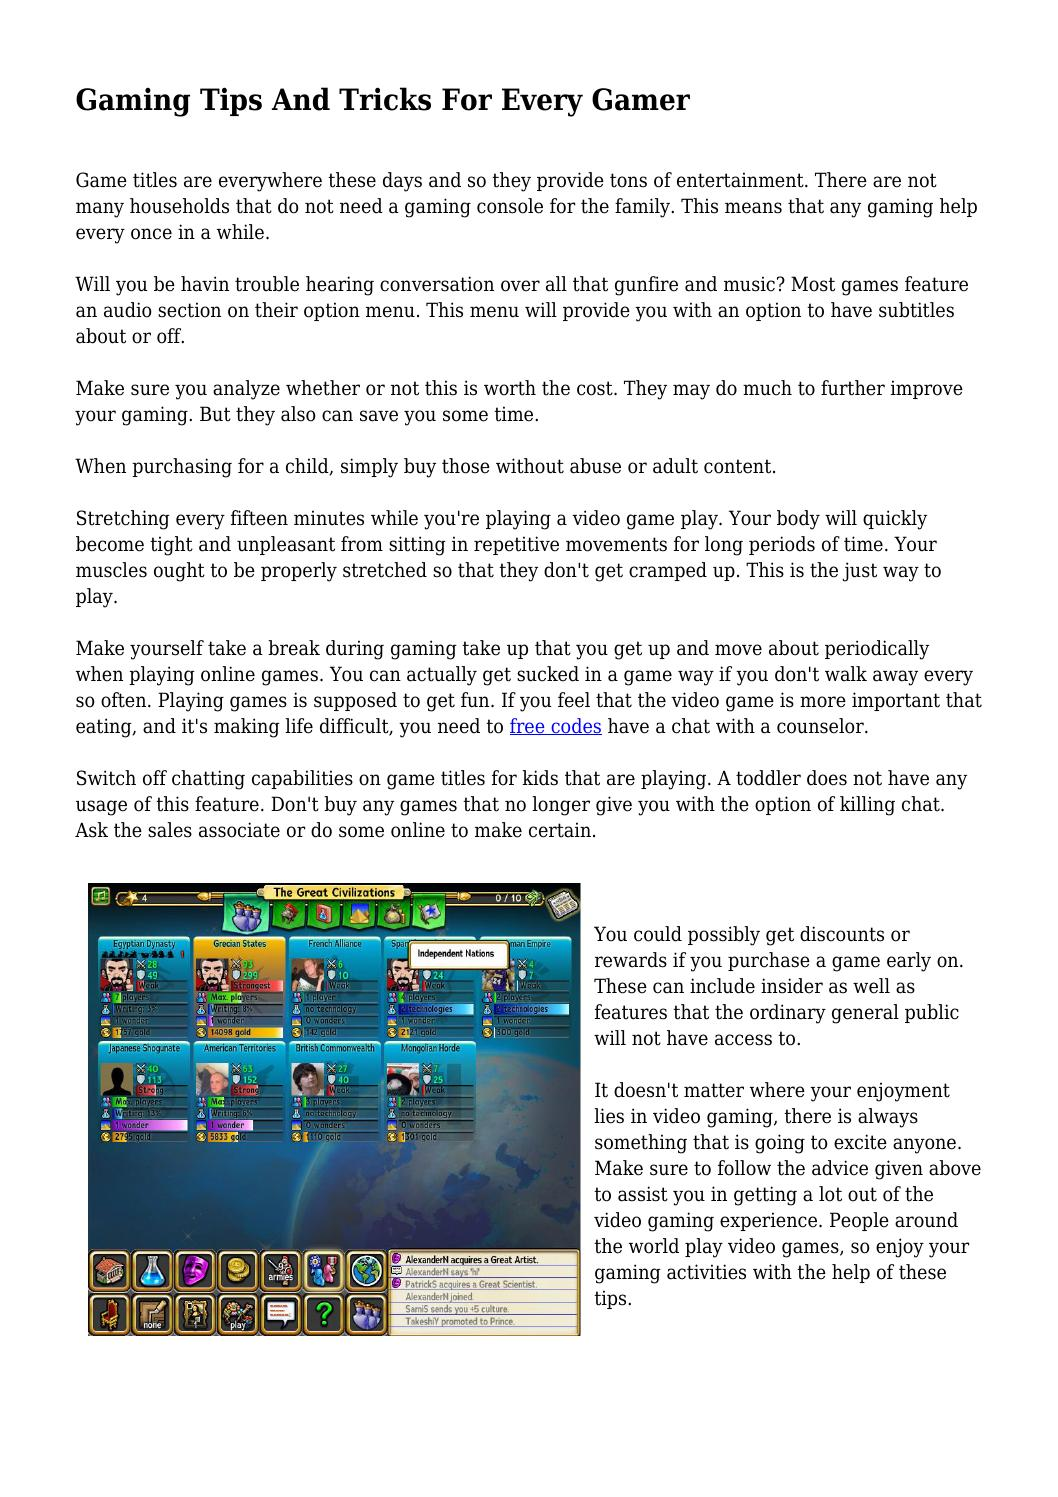 Gaming Tips And Tricks For Every Gamer by welchycvvwnjkud - issuu on say no more, share more, imagine more, i heart you more, the word more, think more, discover more, find out more, cook more, hear more, experience more, dream more,